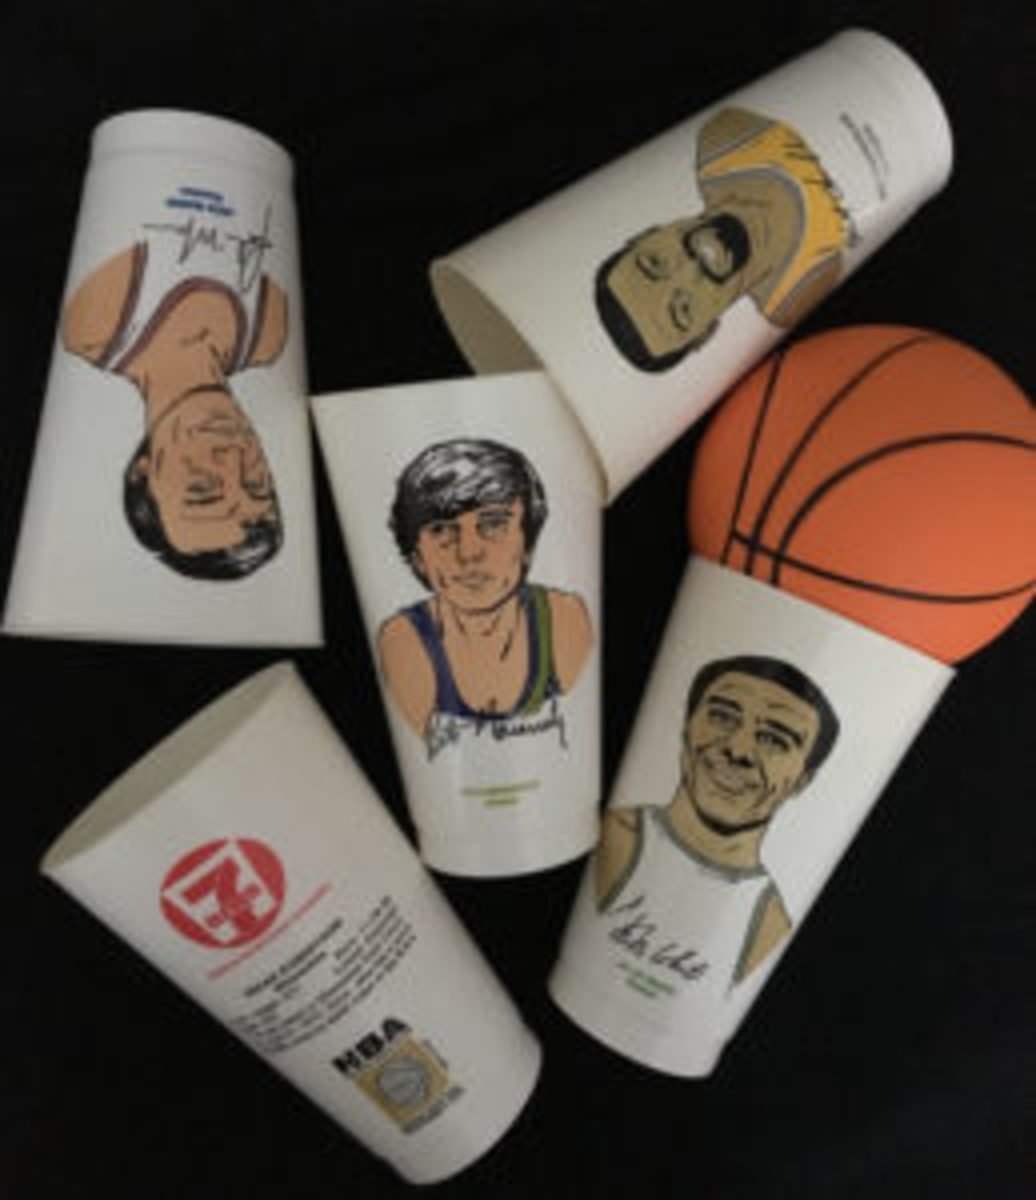 A sampling of the 7-Eleven Slurpee basketball cups that were released in the early 1970s.